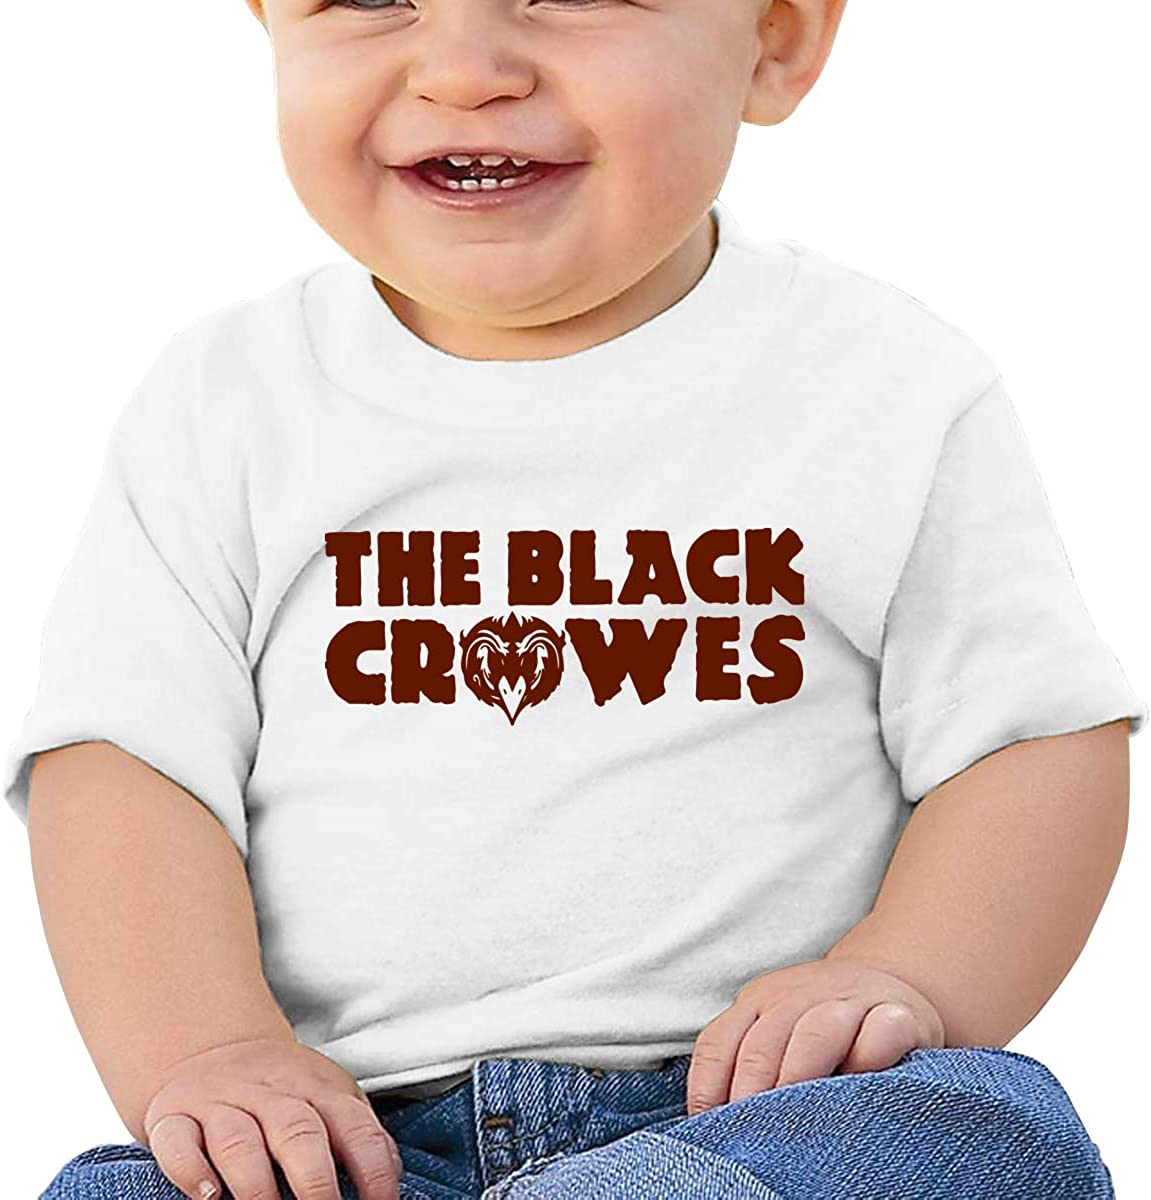 ANDREWPEO Baby The Black Crowes Shirts Toddler Fashion Short Tee